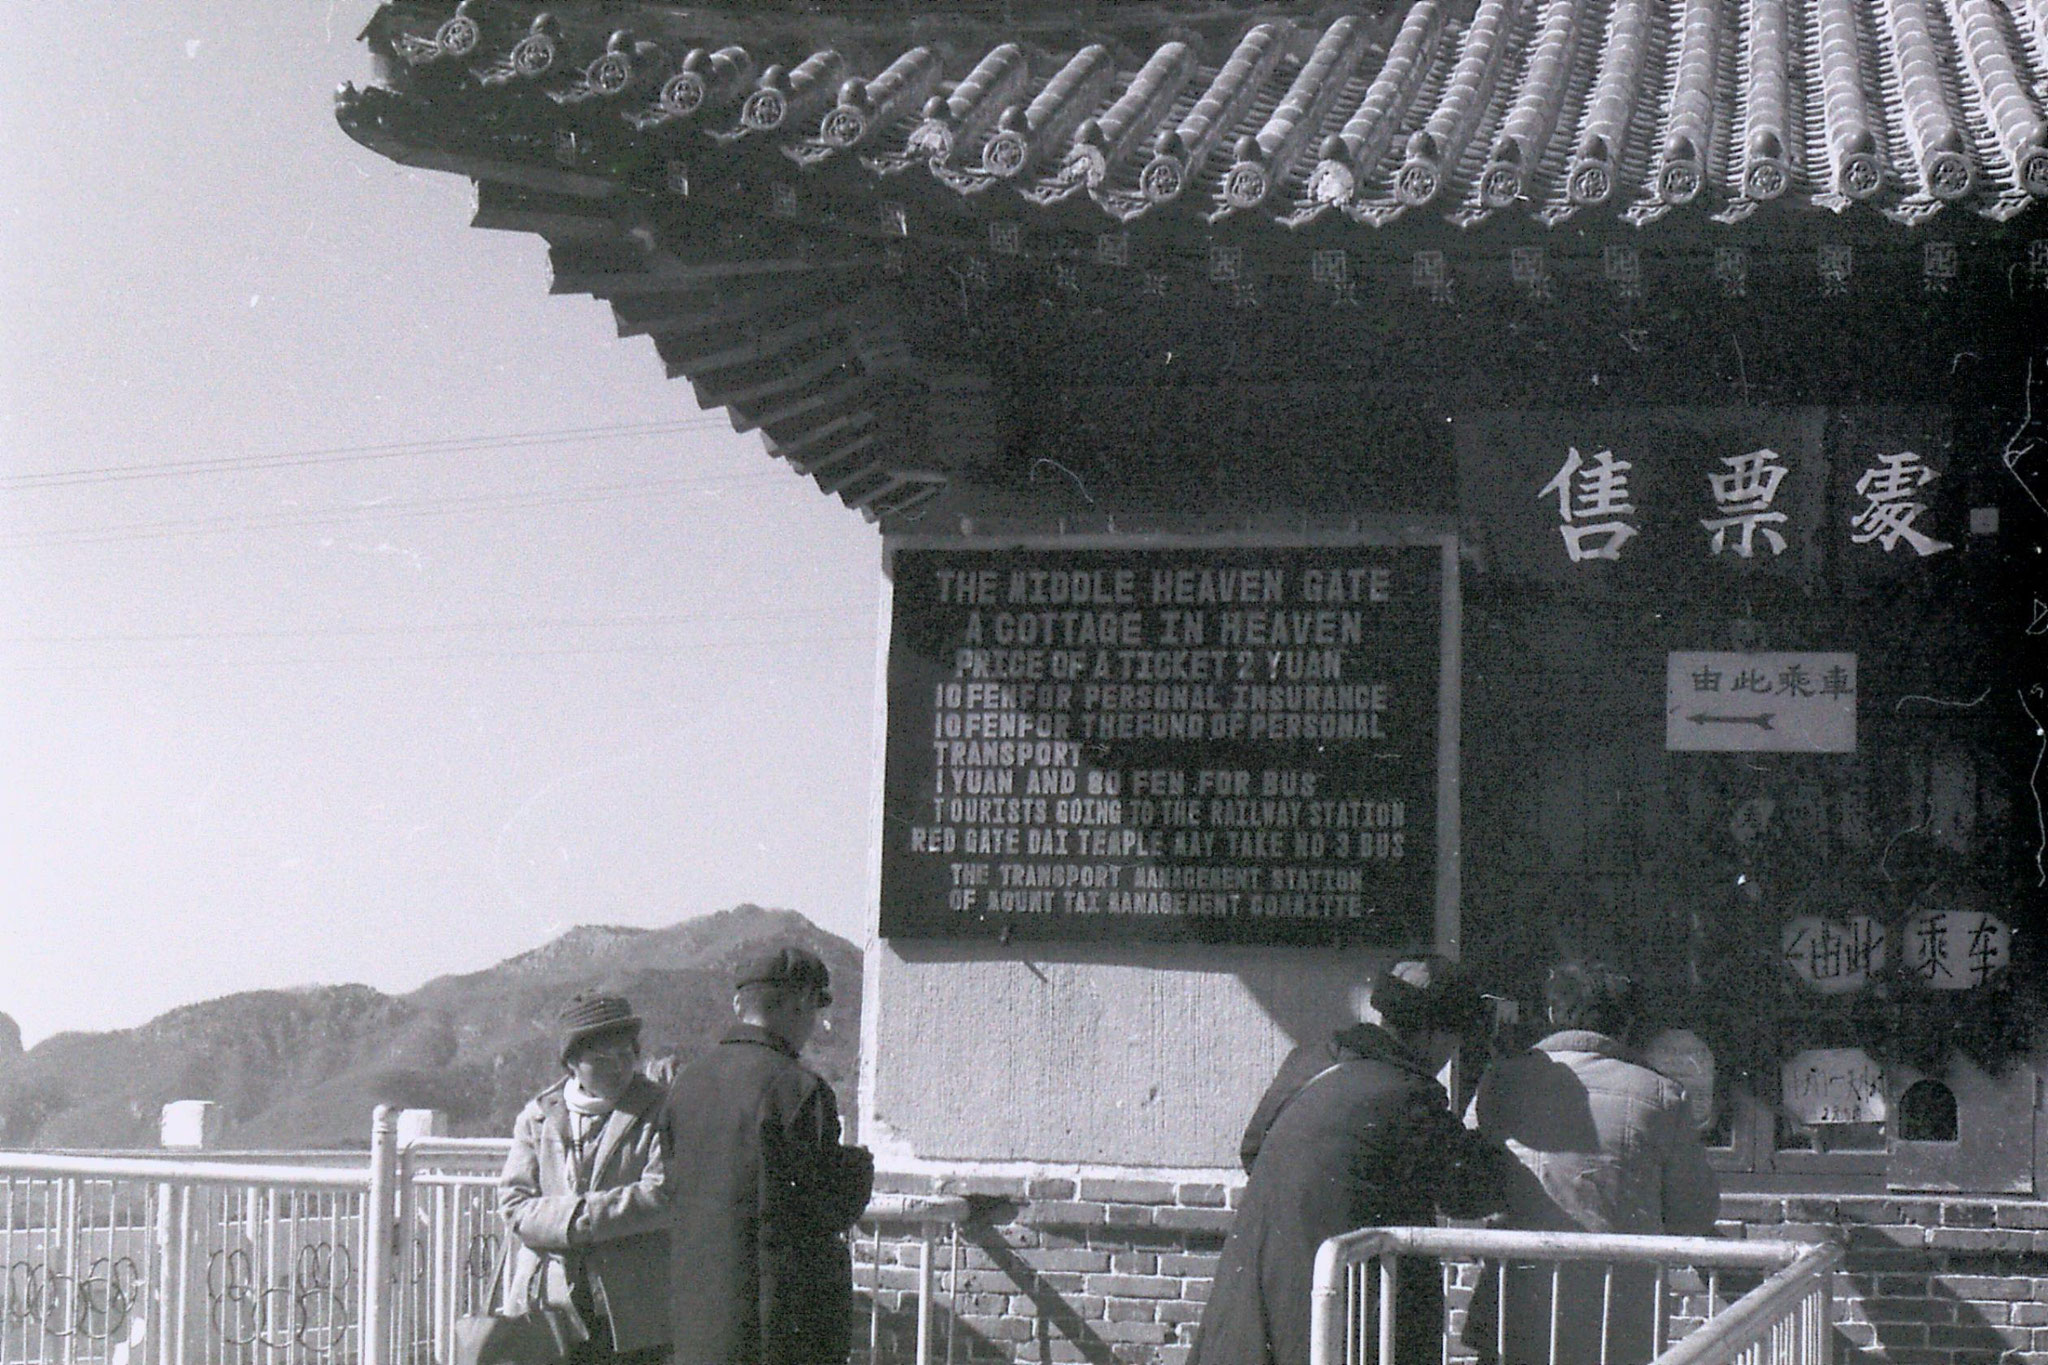 18/2/1989: 13: Taishan: sign at lift station - 2 yuan fare for bus half way